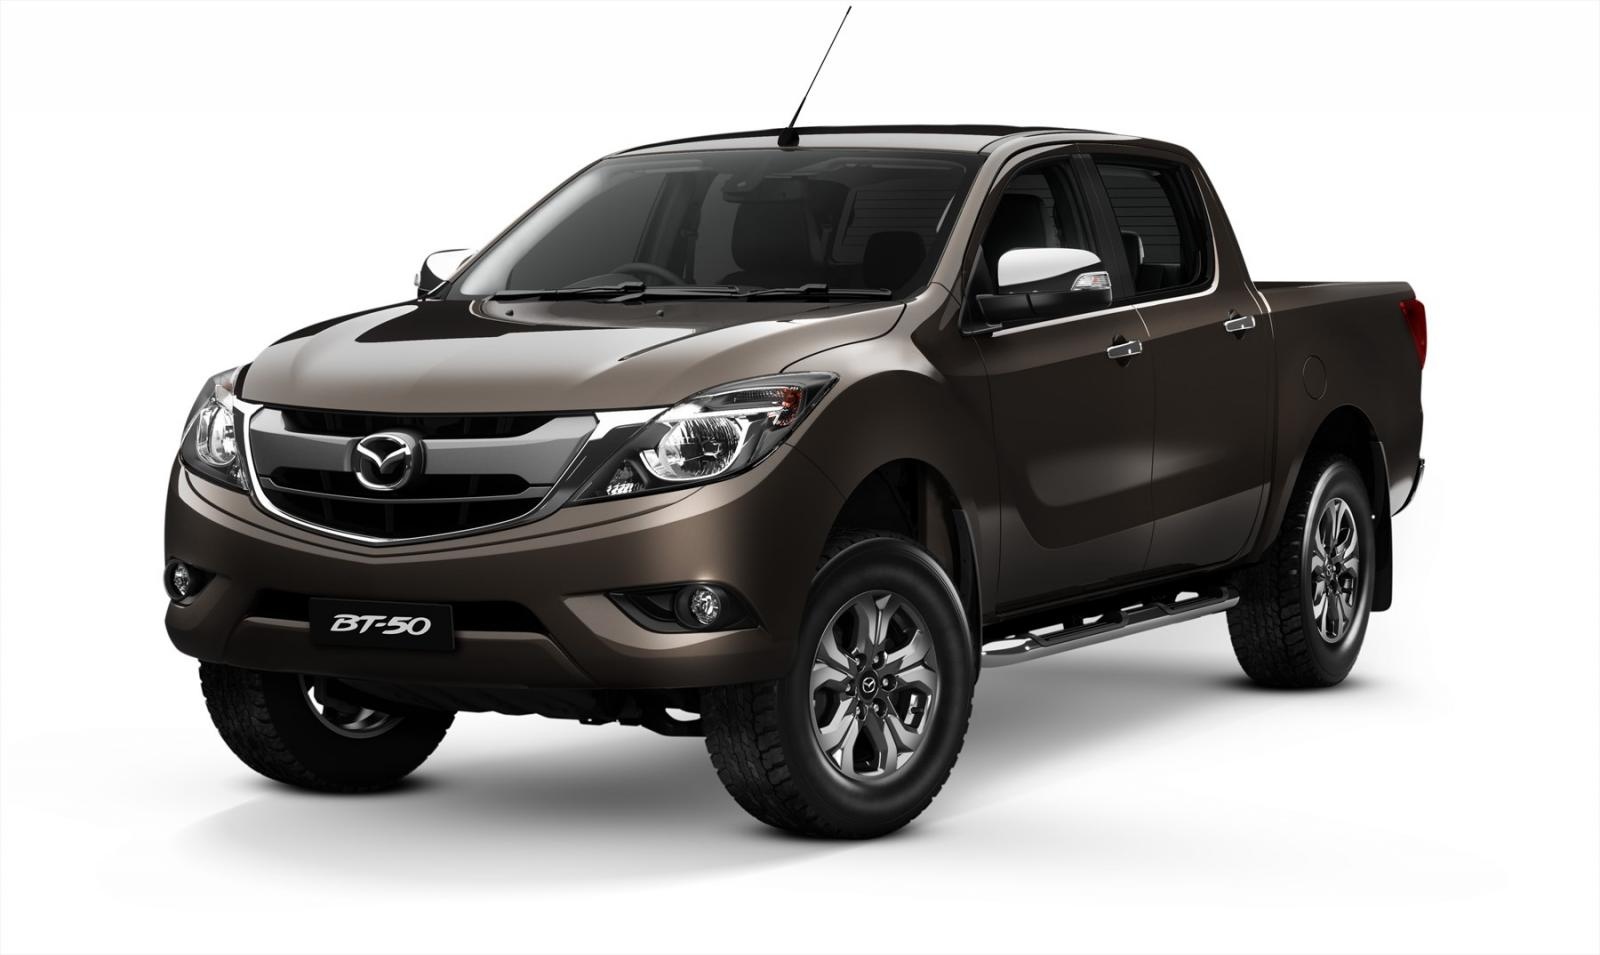 Mazda BT-50 (2017) Specs and Pricing - Cars.co.za